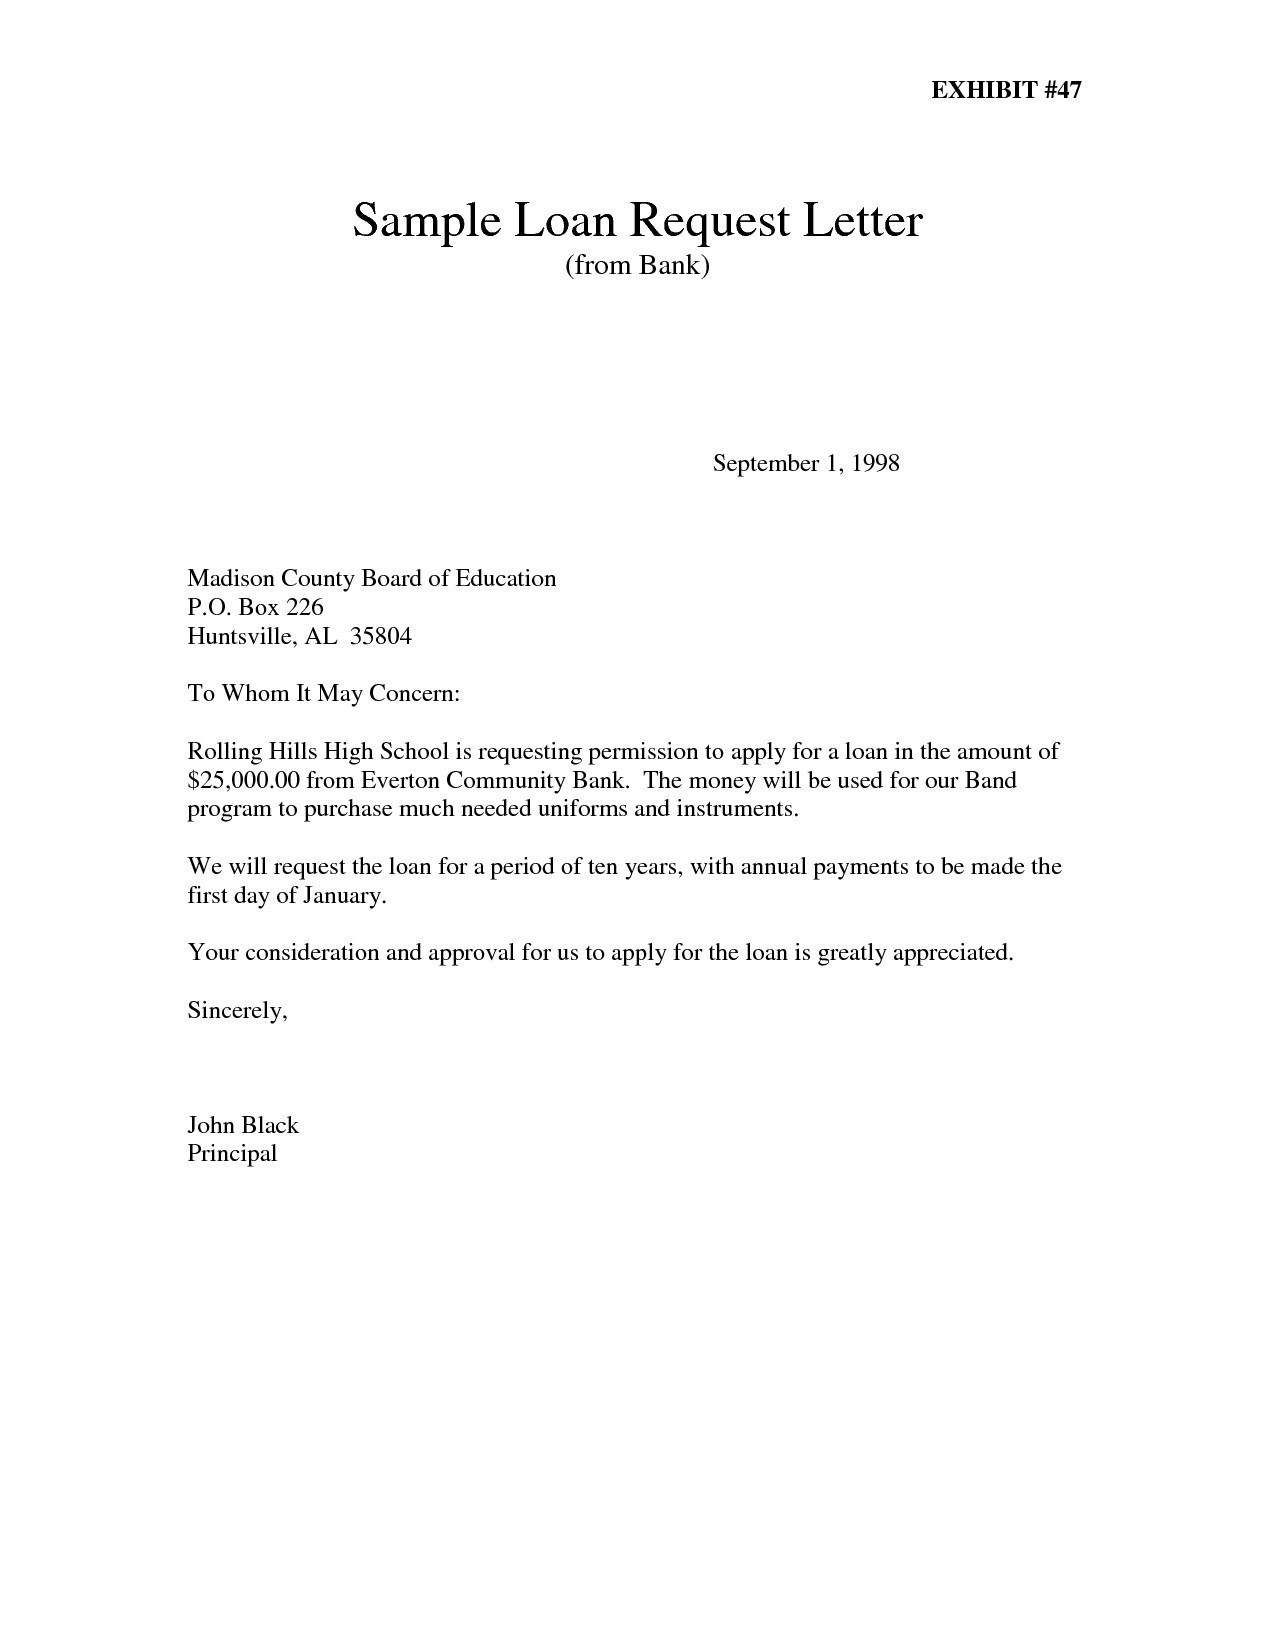 personal loan repayment letter template best request letter to bank loan